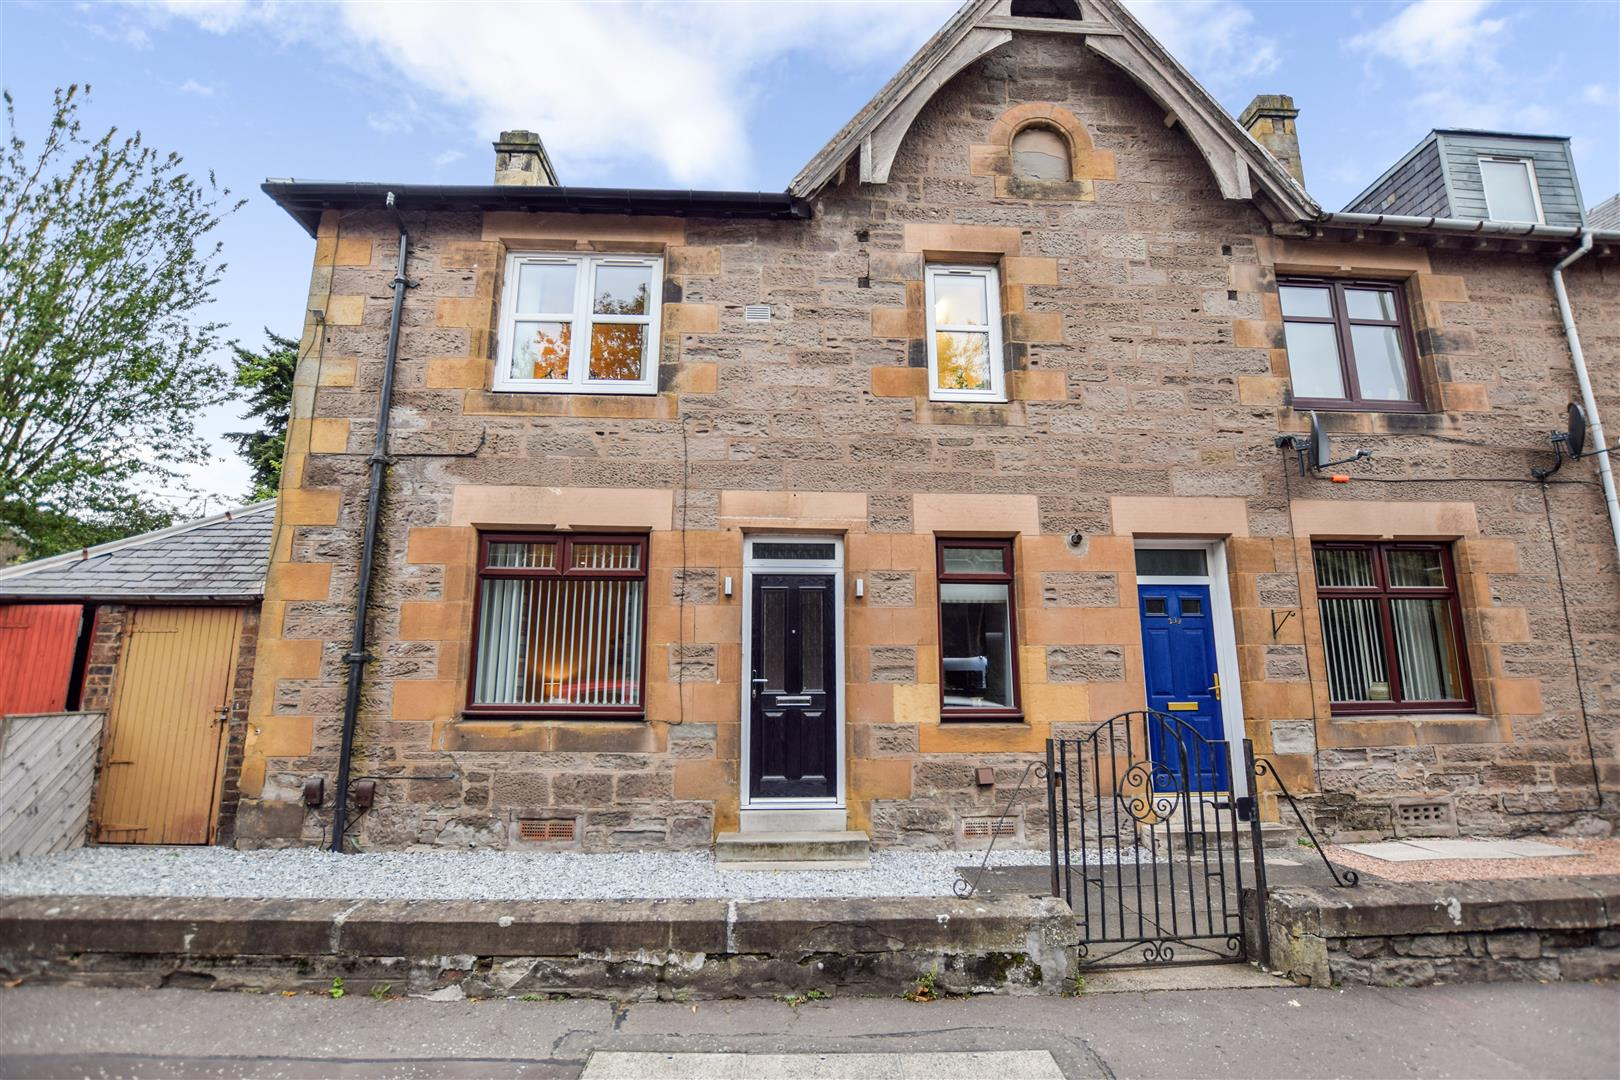 235, Glasgow Road, Perth, Perthshire, PH2 0NB, UK